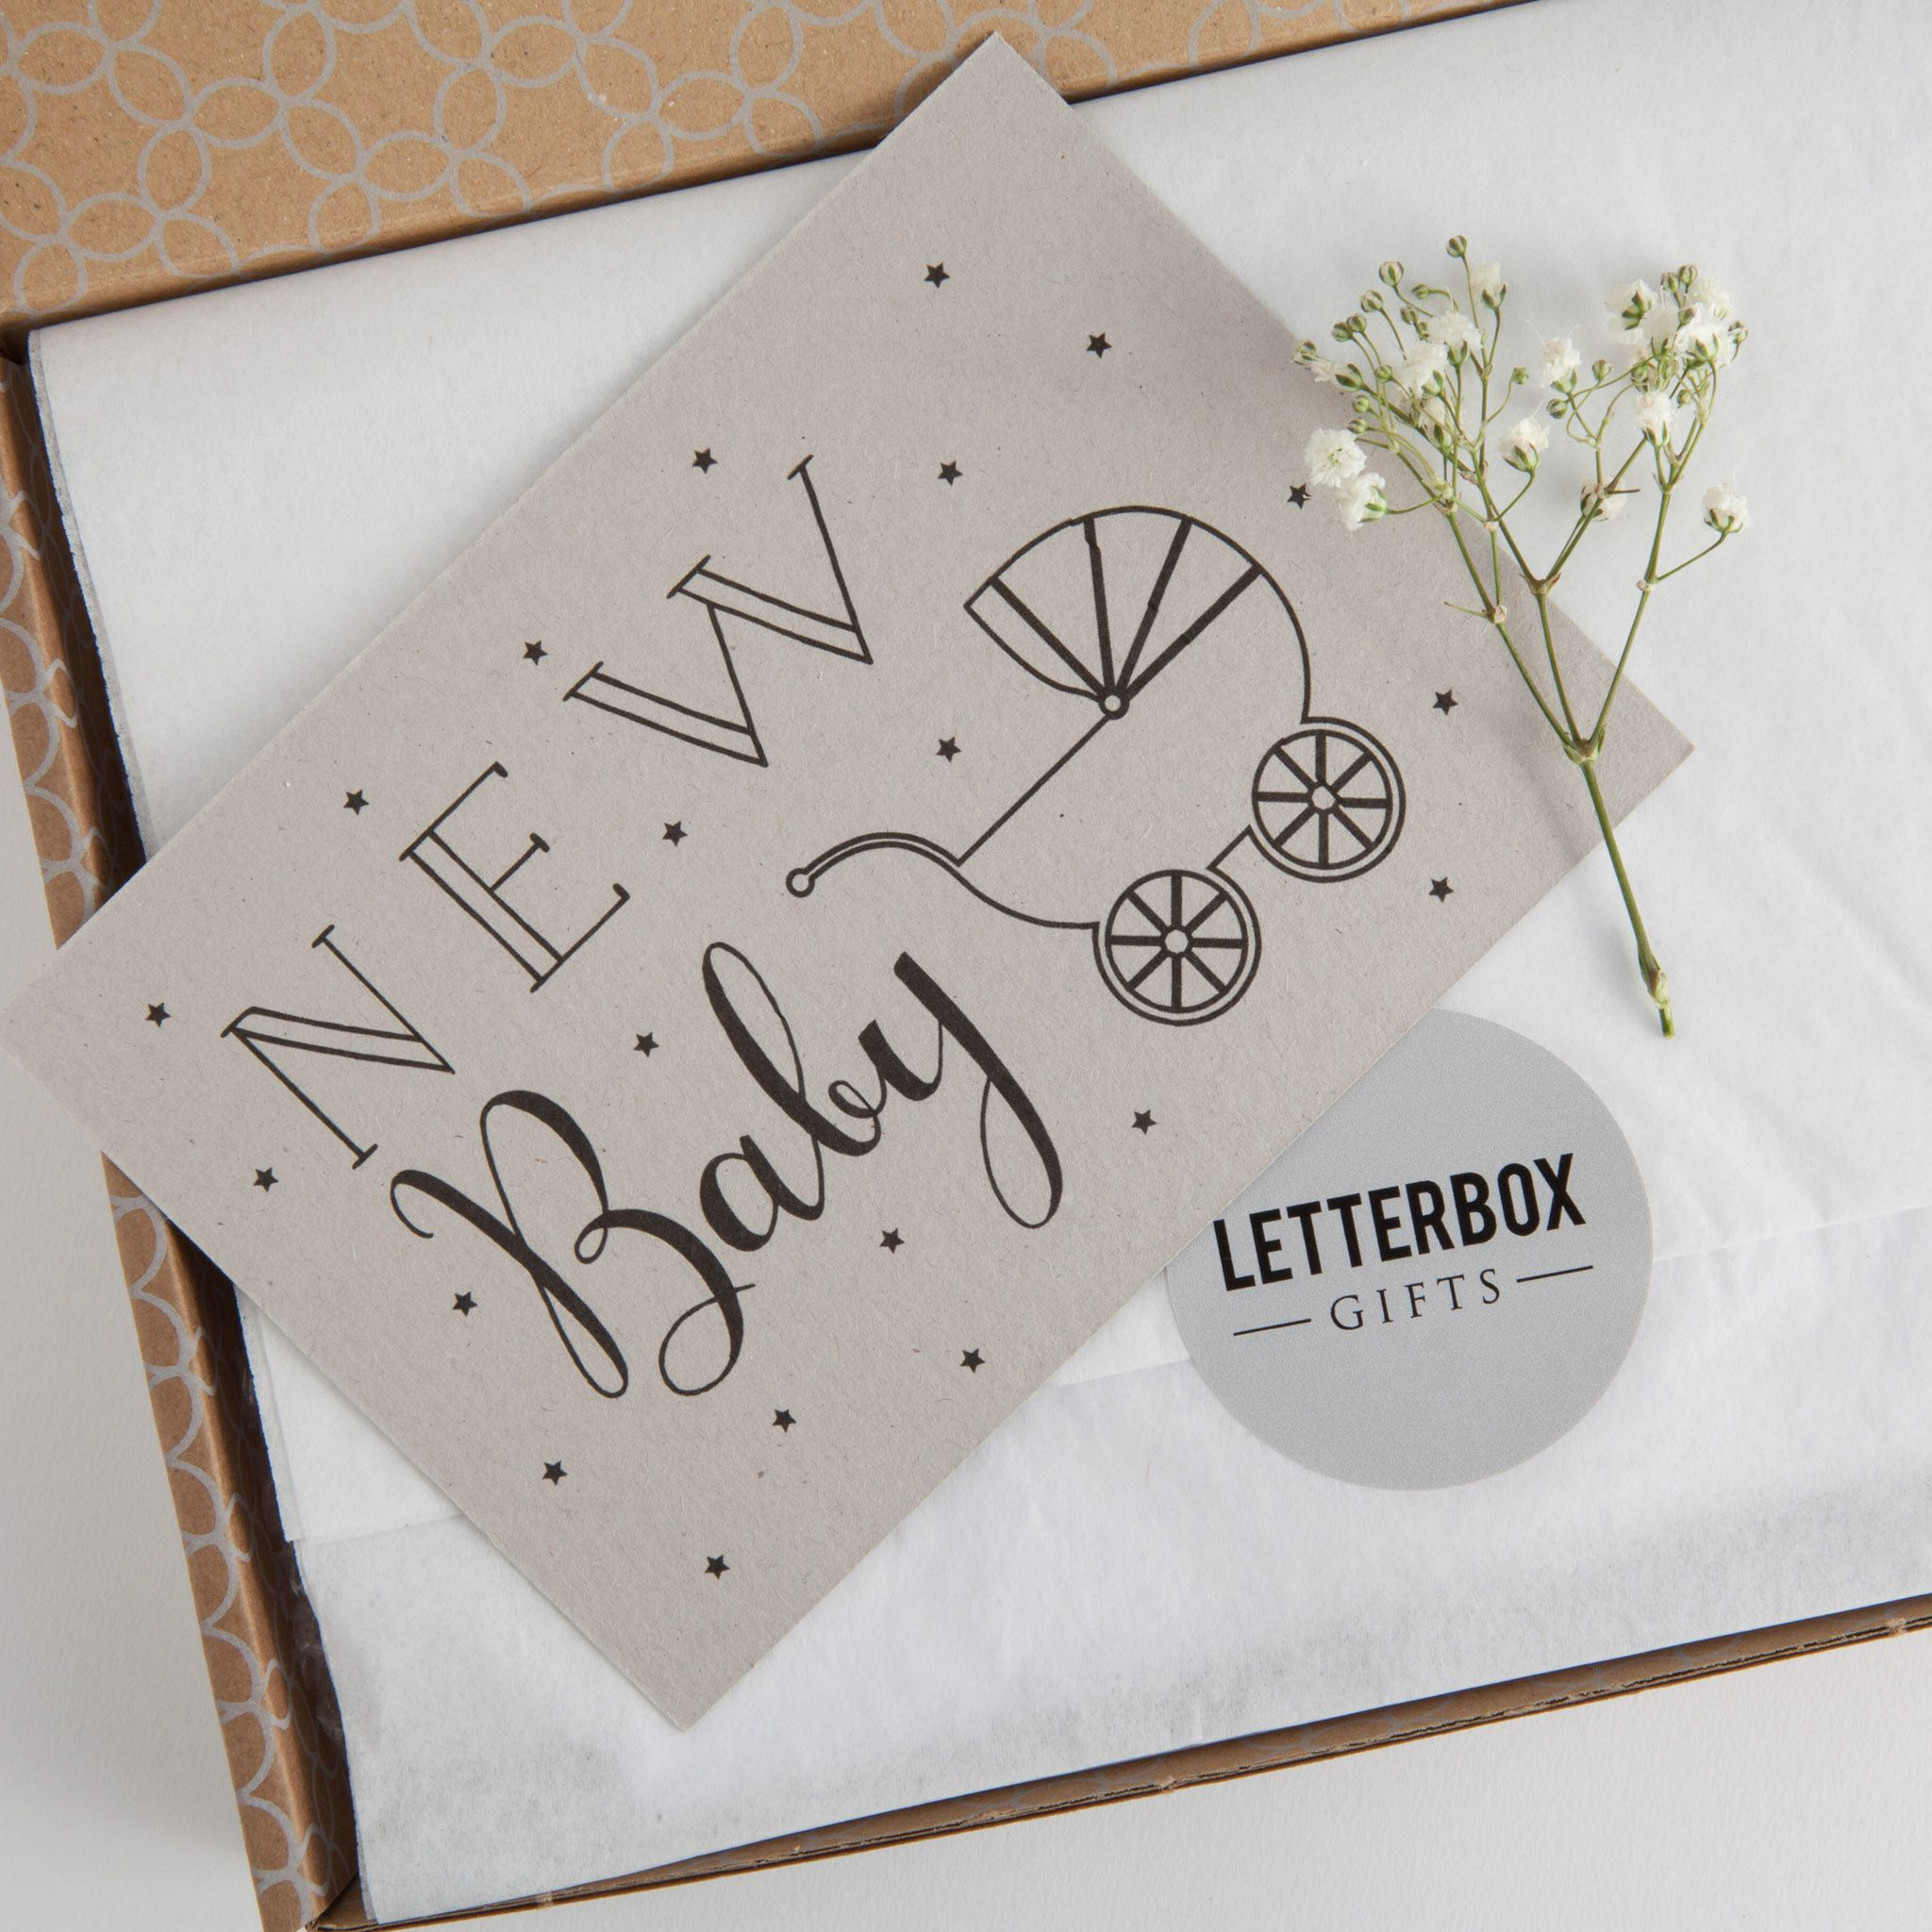 The new baby letterbox gift deserves a new baby greetings card of the new baby letterbox gift deserves a new baby greetings card of course newbaby kristyandbryce Gallery